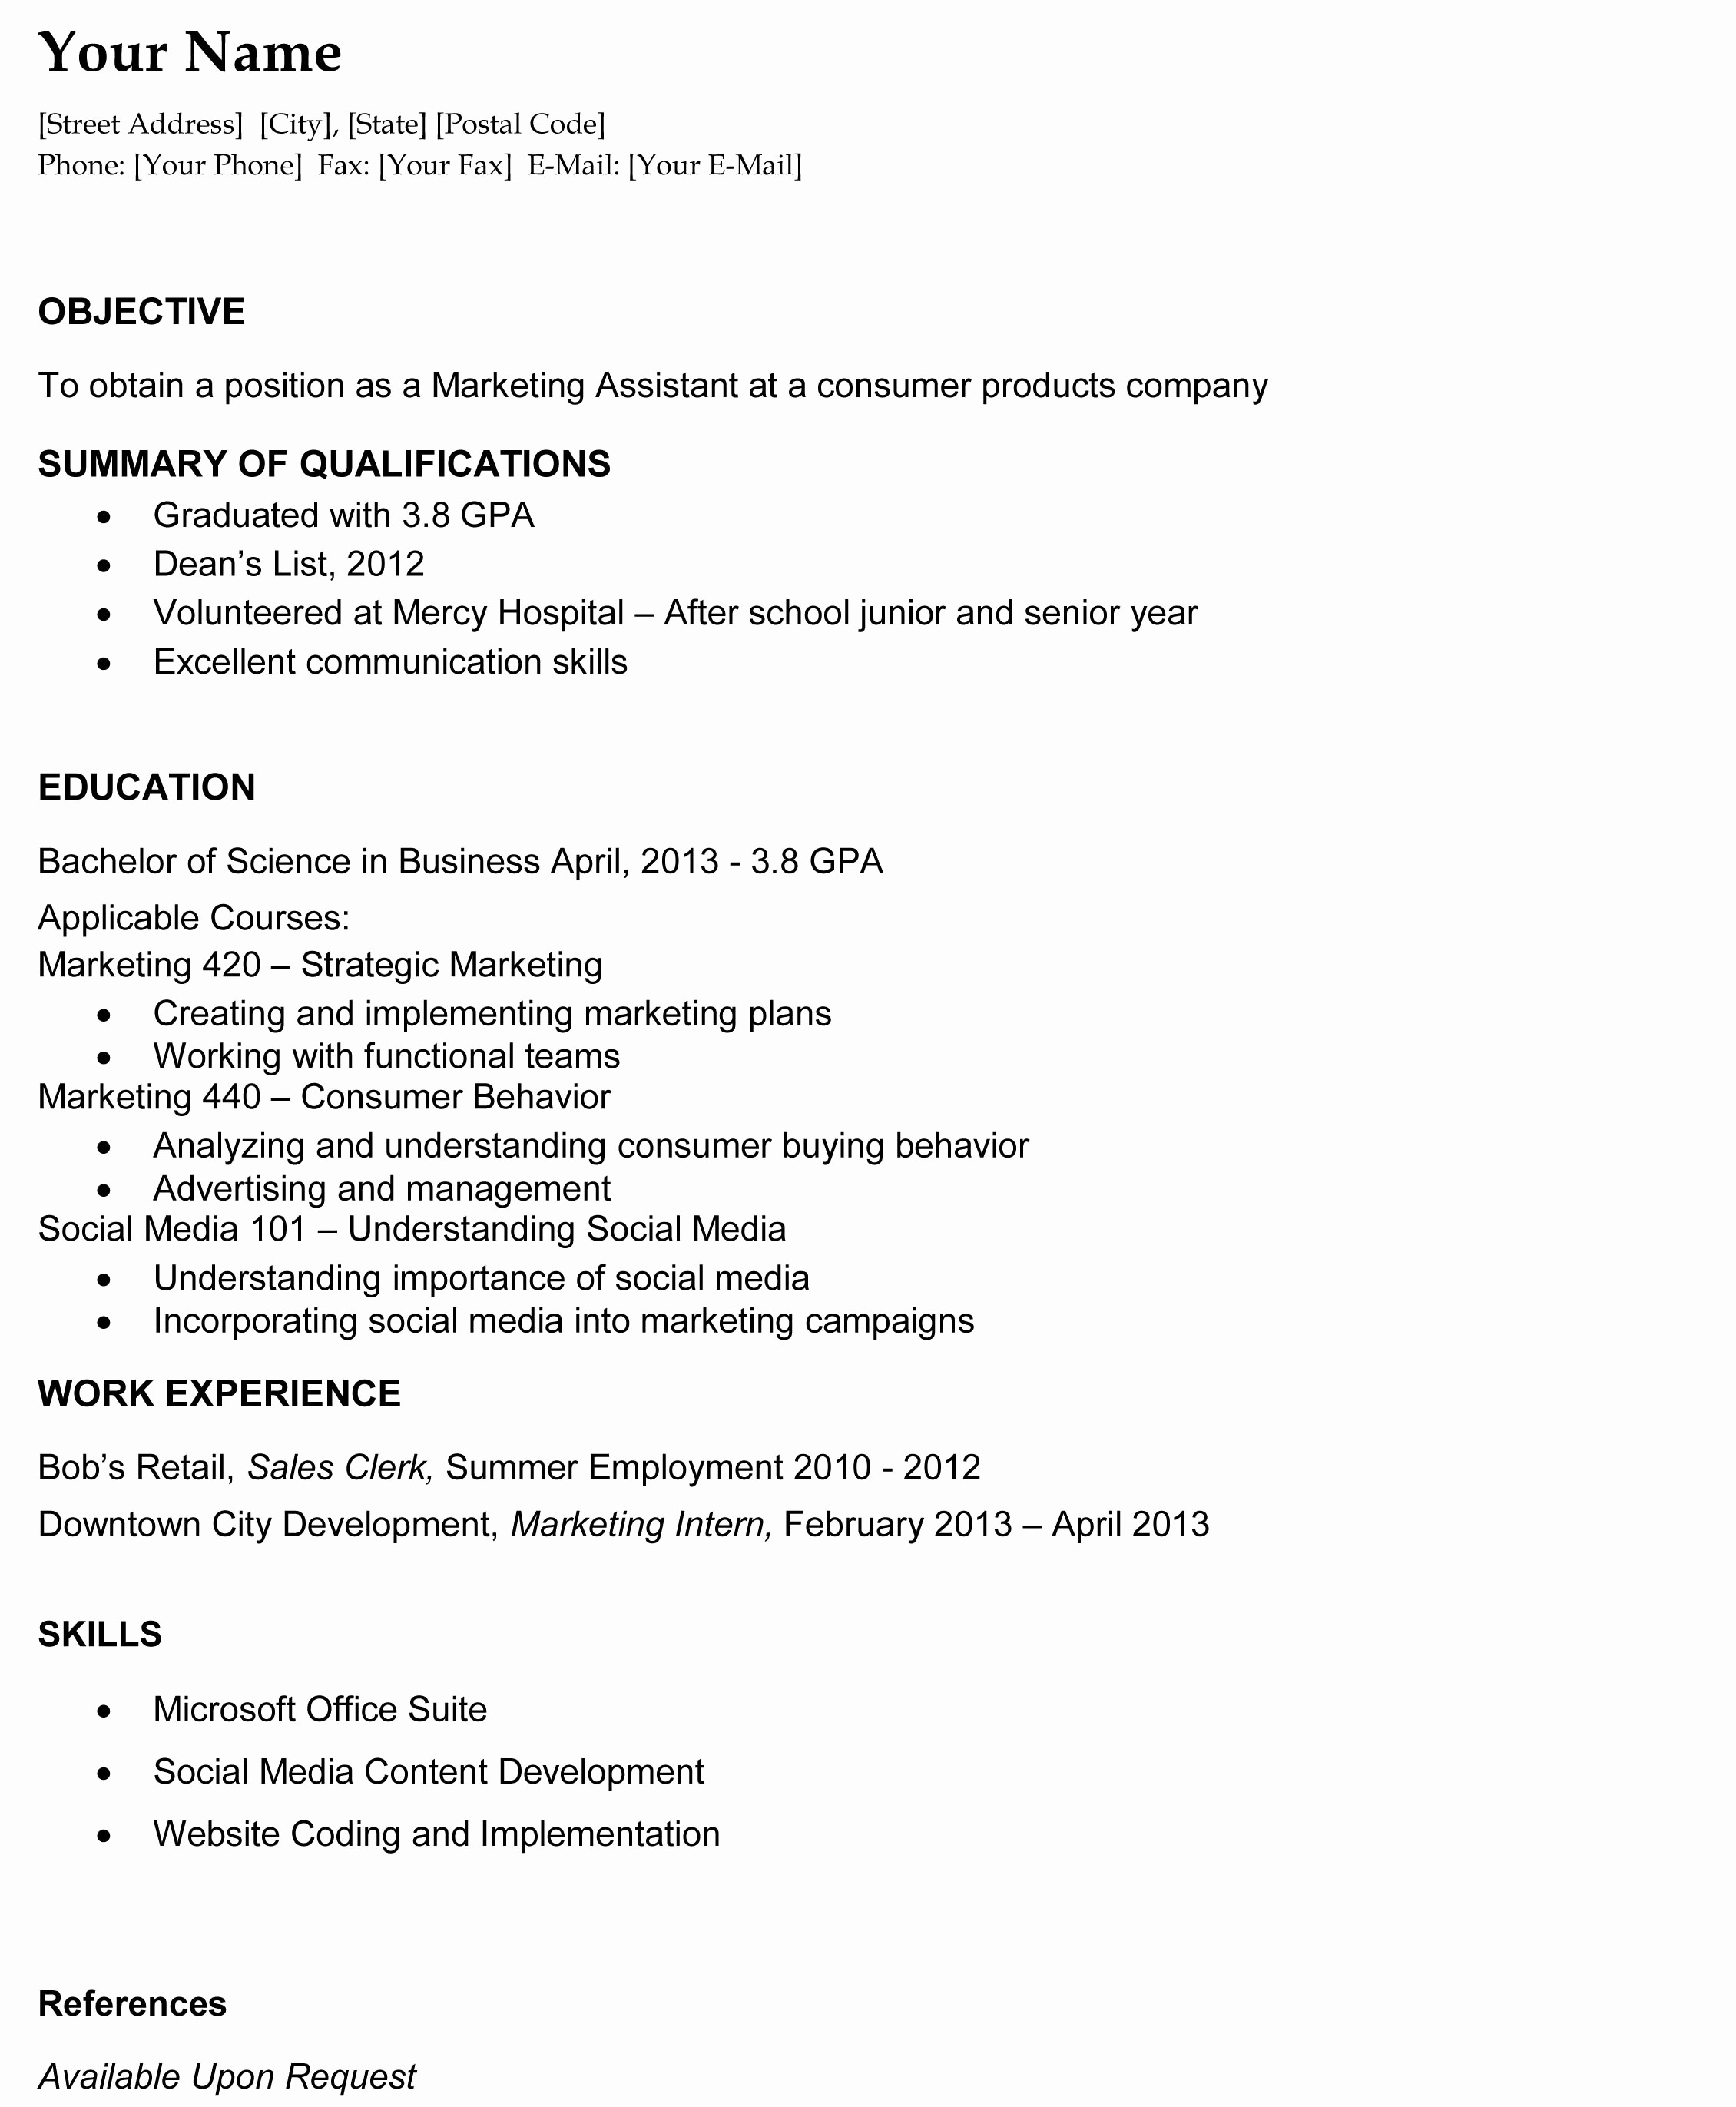 Resumes for Recent College Grads Luxury Recent College Graduate Resume the Resume Template Site